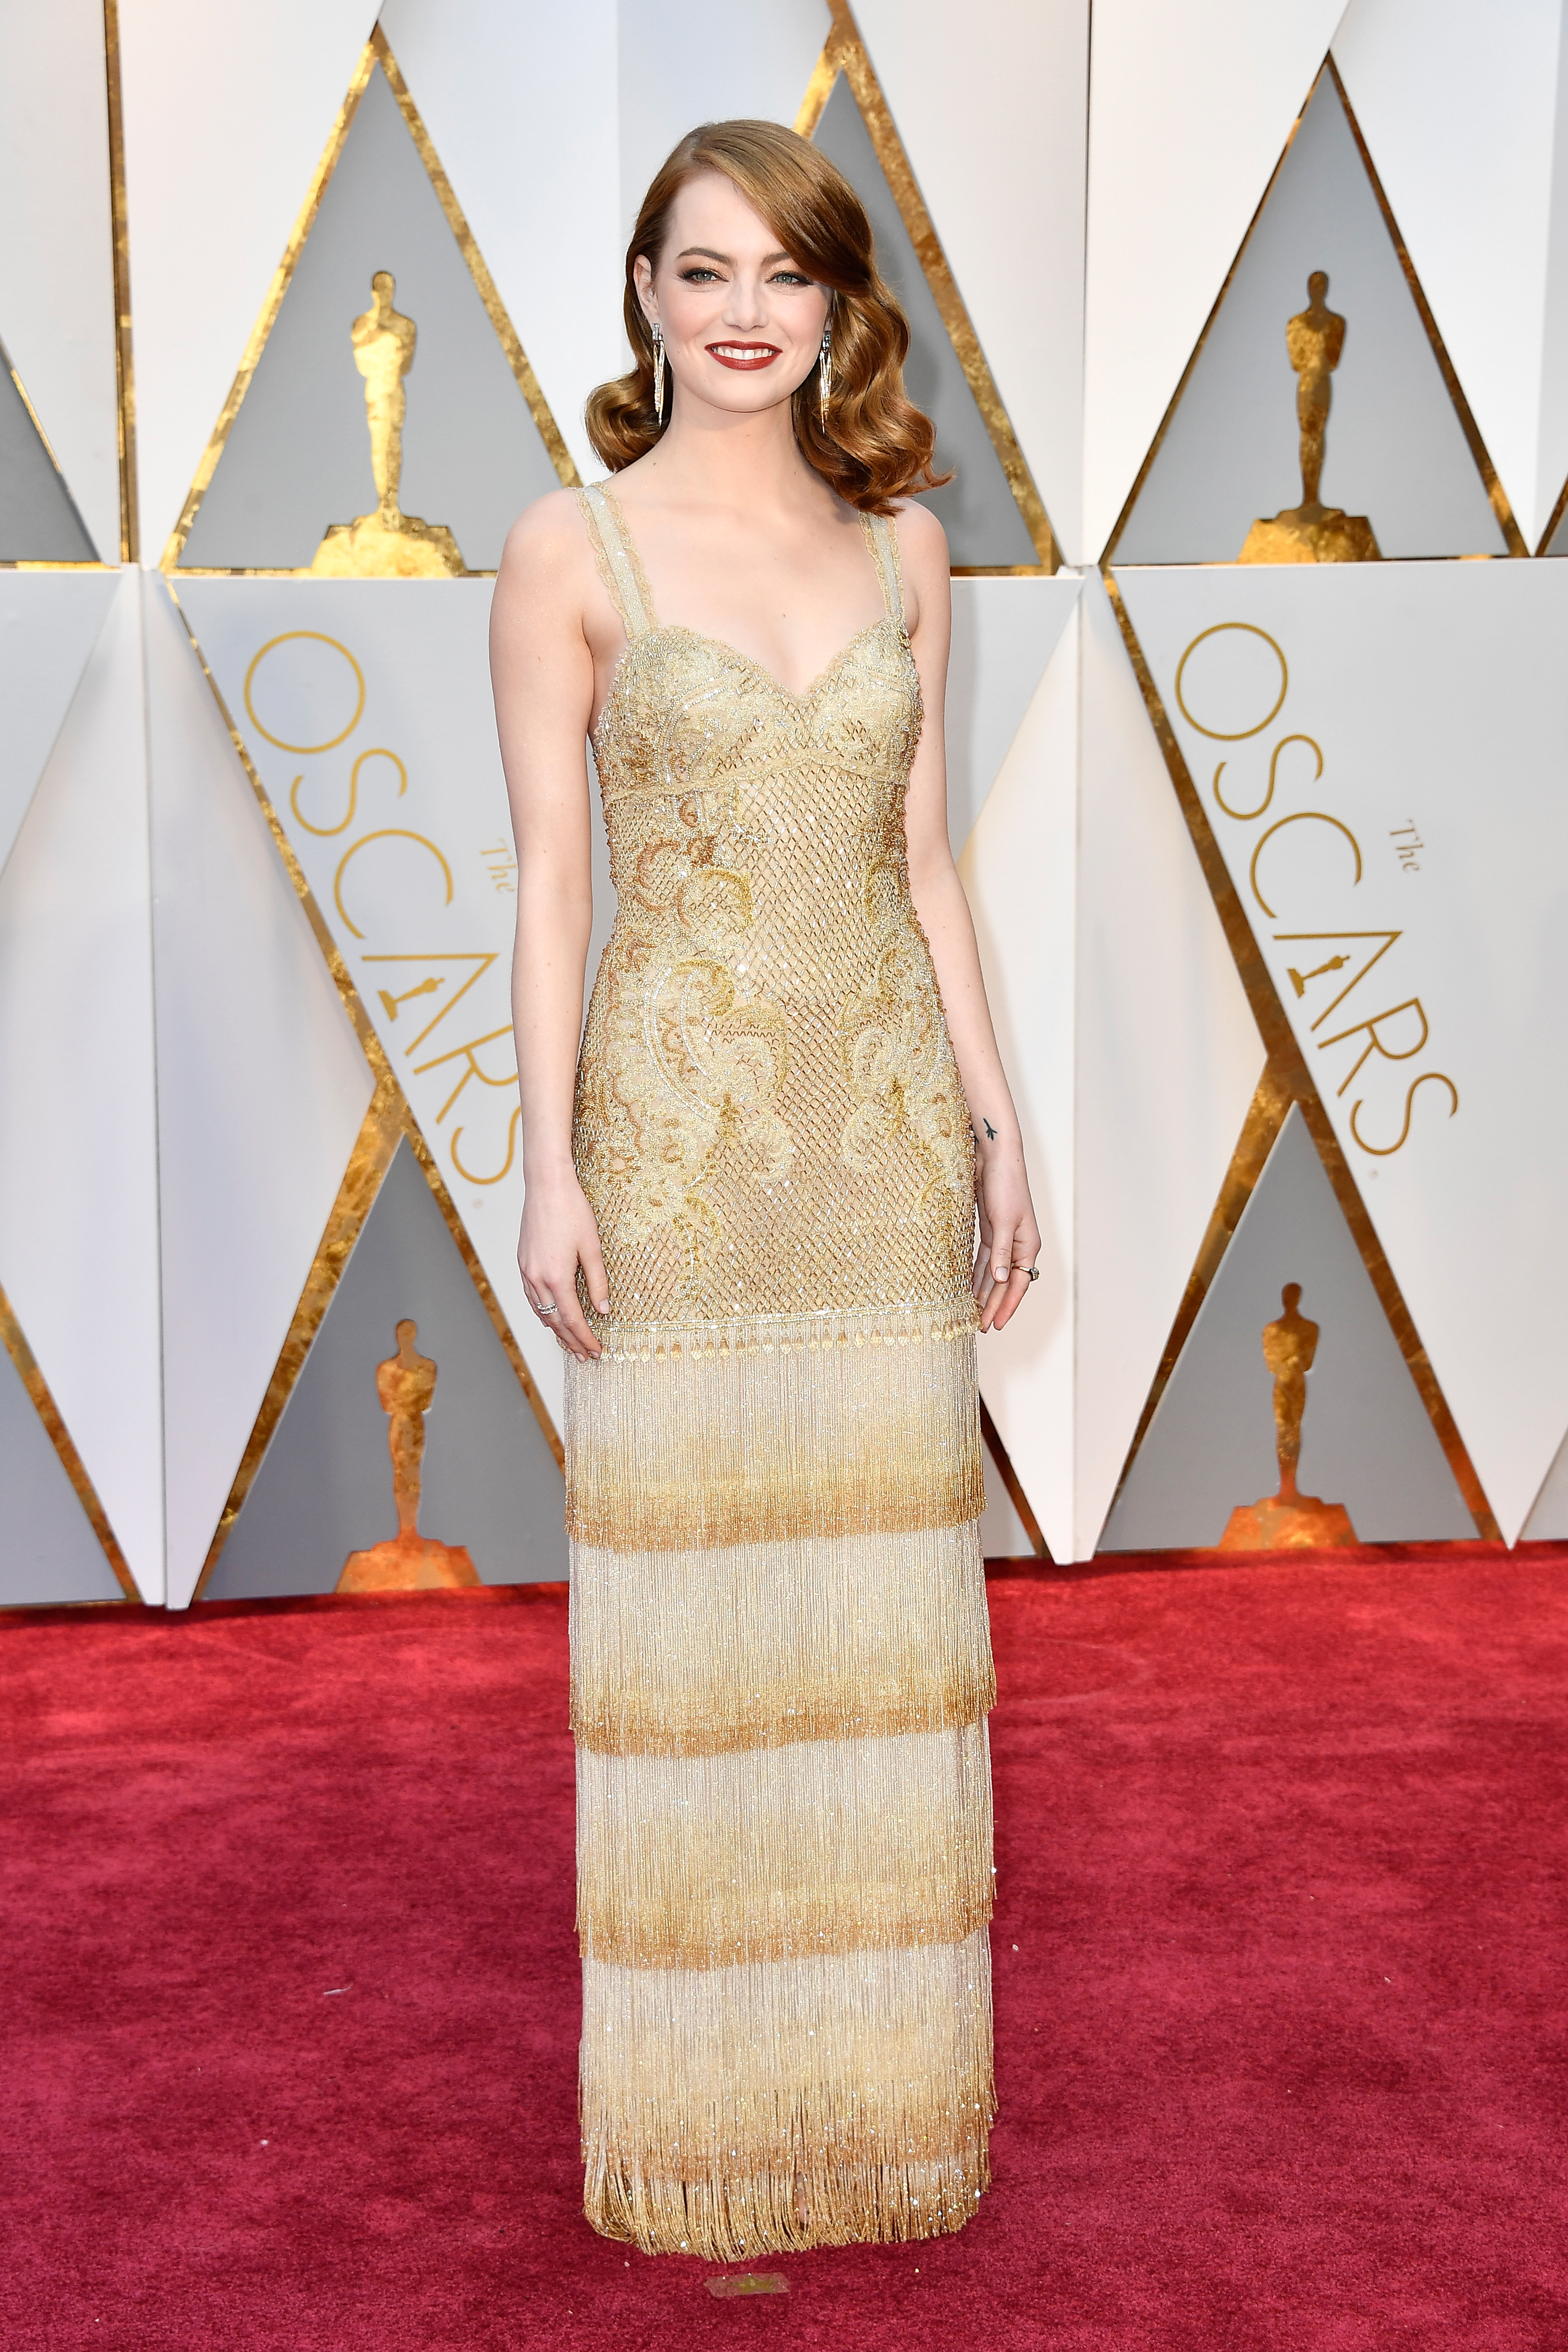 An Image of Emma Stone at the 2017 Oscars